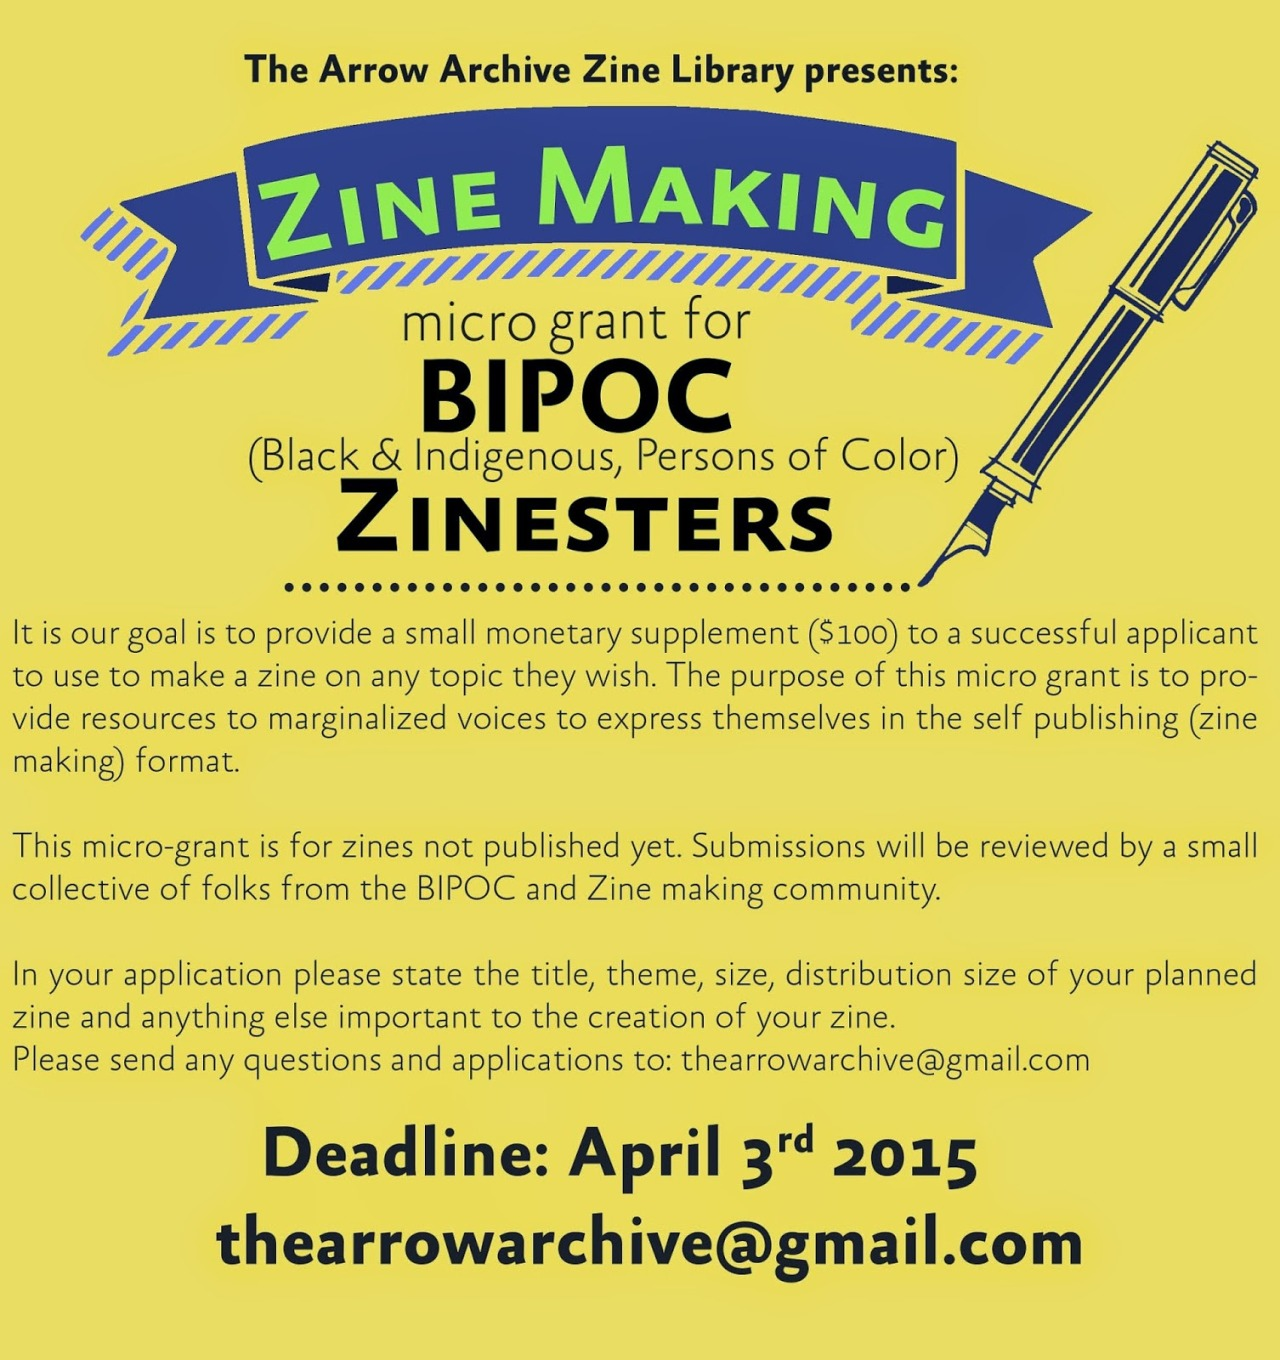 "alchemistscloset :   ""Arrow Archive is proud to present  a Micro Zine Making Grant for BIPOC ( Black, Indigenous, Persons Of Color) Zinesters.   It is our goal is to provide a small monetary supplement ($100) to a  successful applicant to use to make a zine on any topic they wish. The  purpose of this micro grant is to provide resources to marginalized  voices to express themselves in the self publishing (zine making)  format.      This  micro-grant is for zines not published yet. Submissions will be  reviewed by a small collective of folks from the BIPOC and Zine making  community.     In  your application please state the title, theme, size, distribution size  of your planned zine and anything else important to the creation of  your zine. Please send any questions and applications to:   thearrowarchive@gmail.com.         deadline: APRIL 3rd 2015! ""  Via  Arrow Archive ."